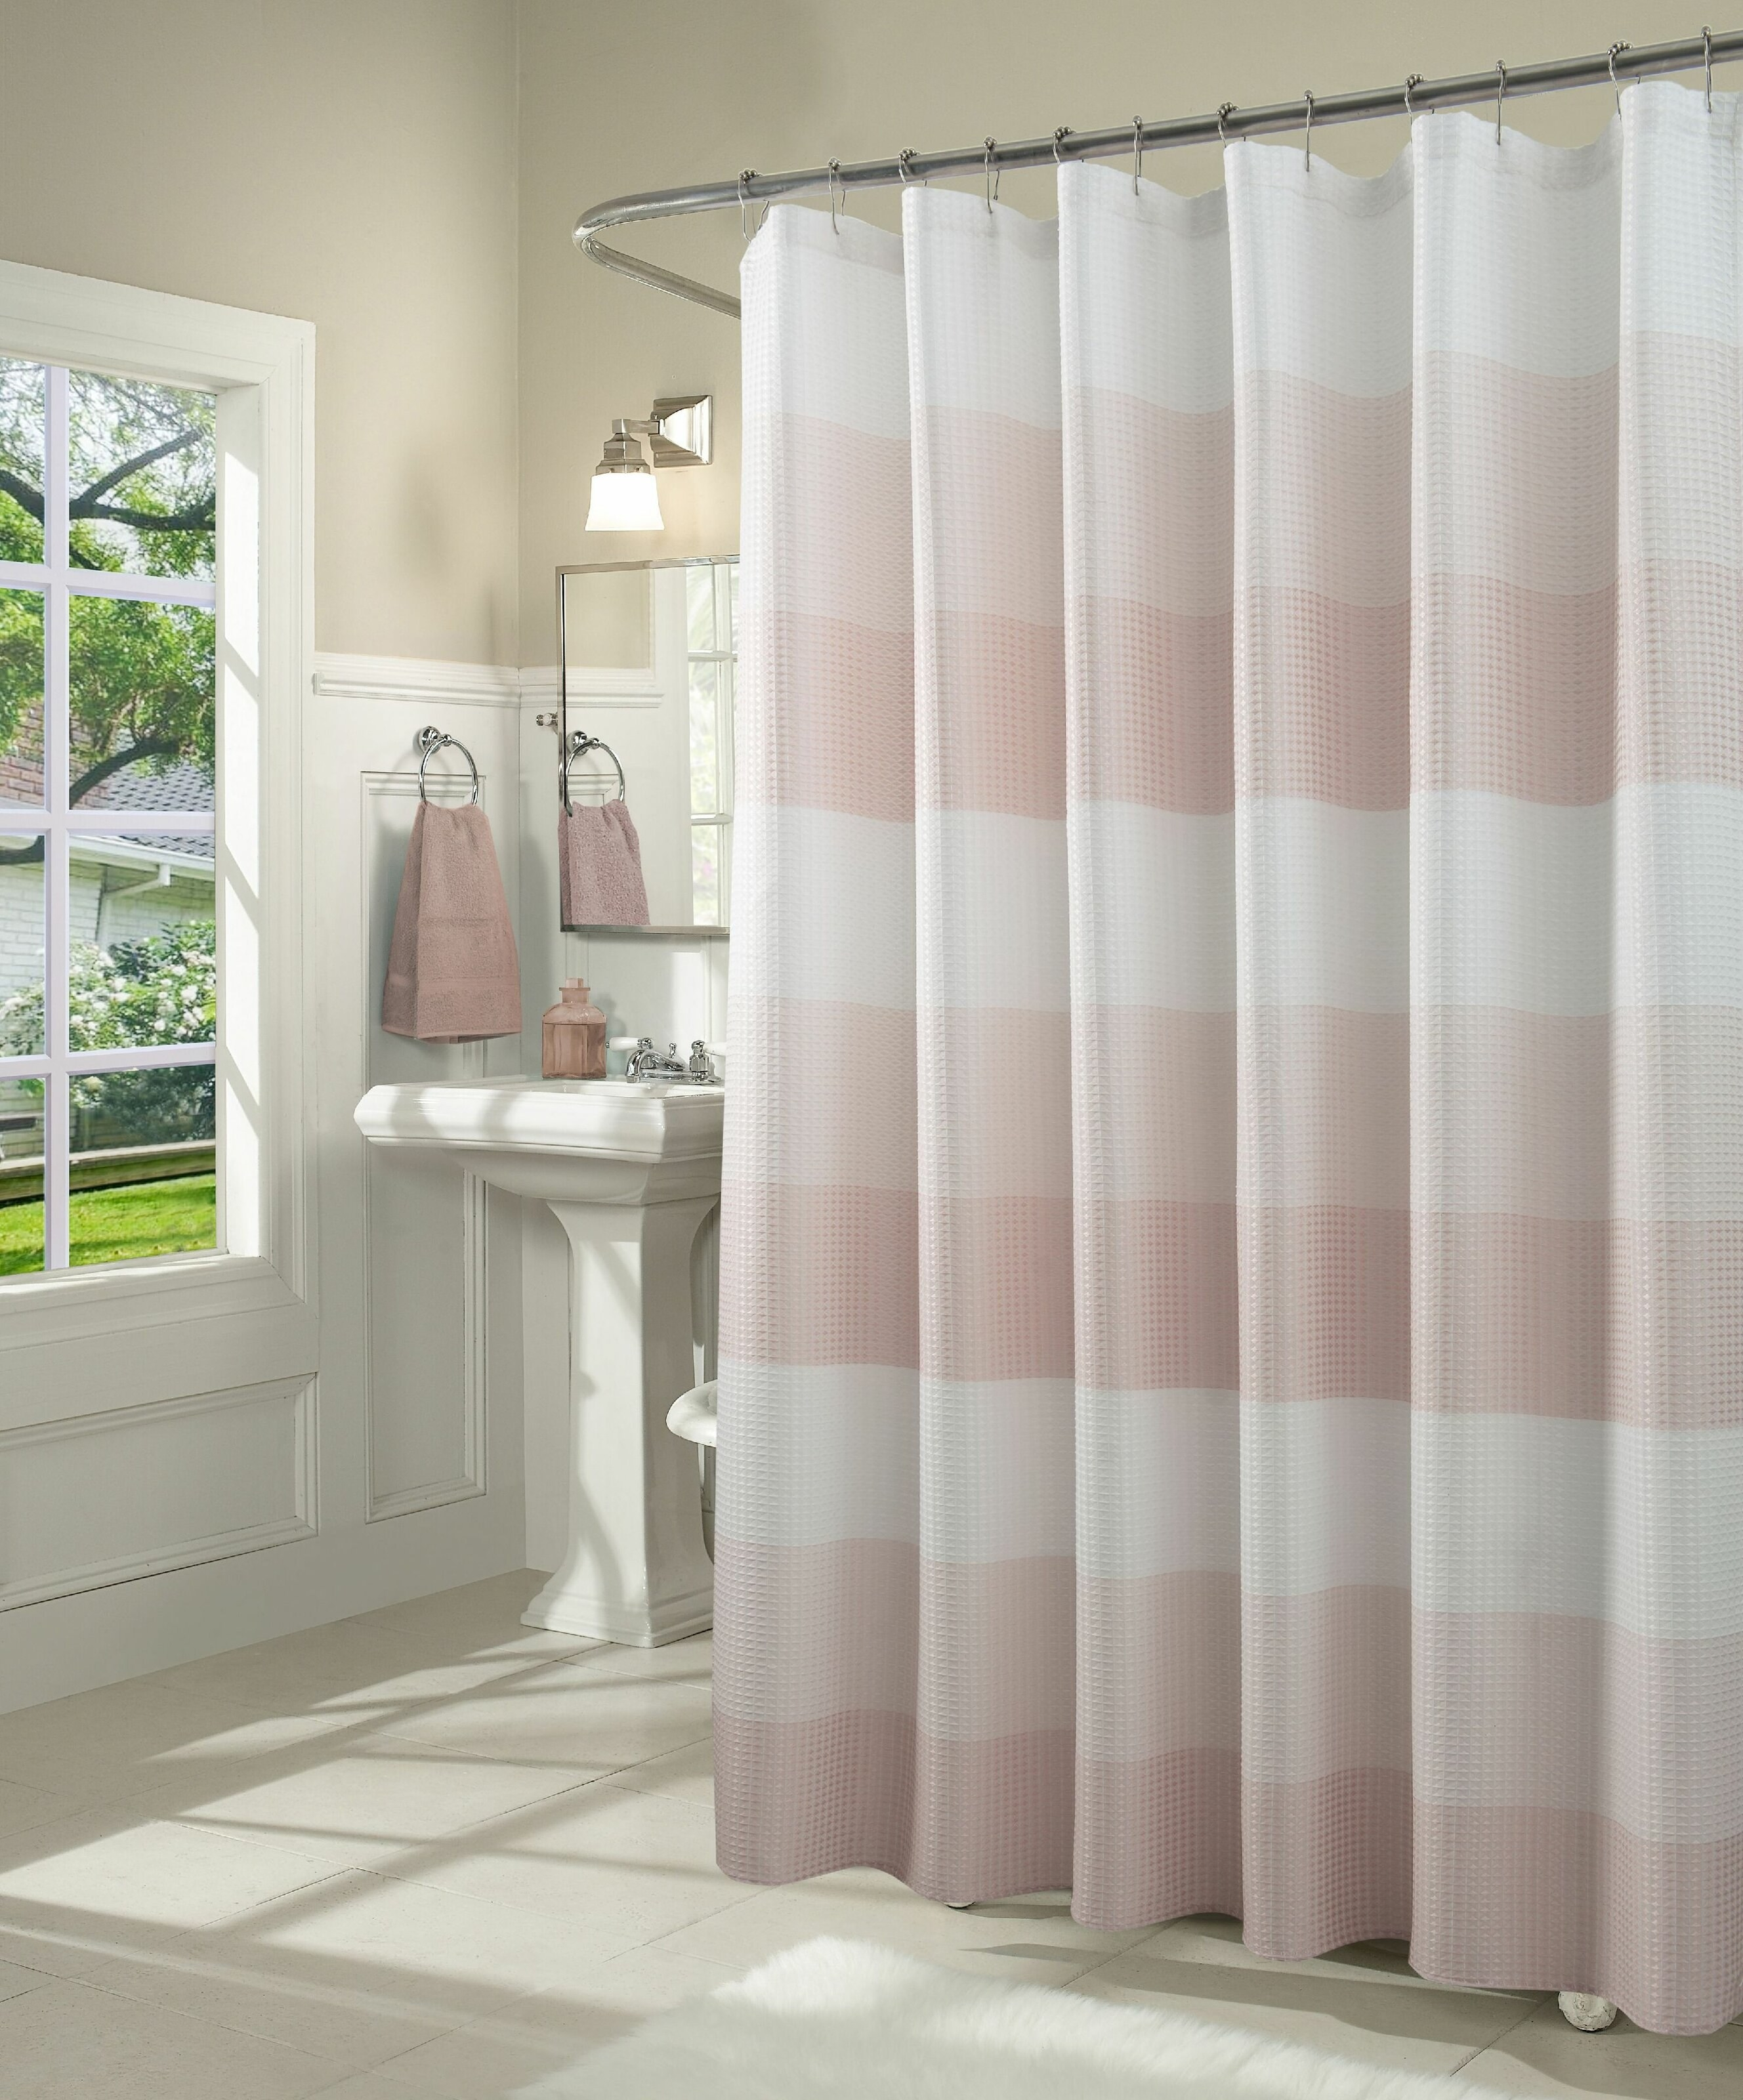 Blush pink and white shower curtain